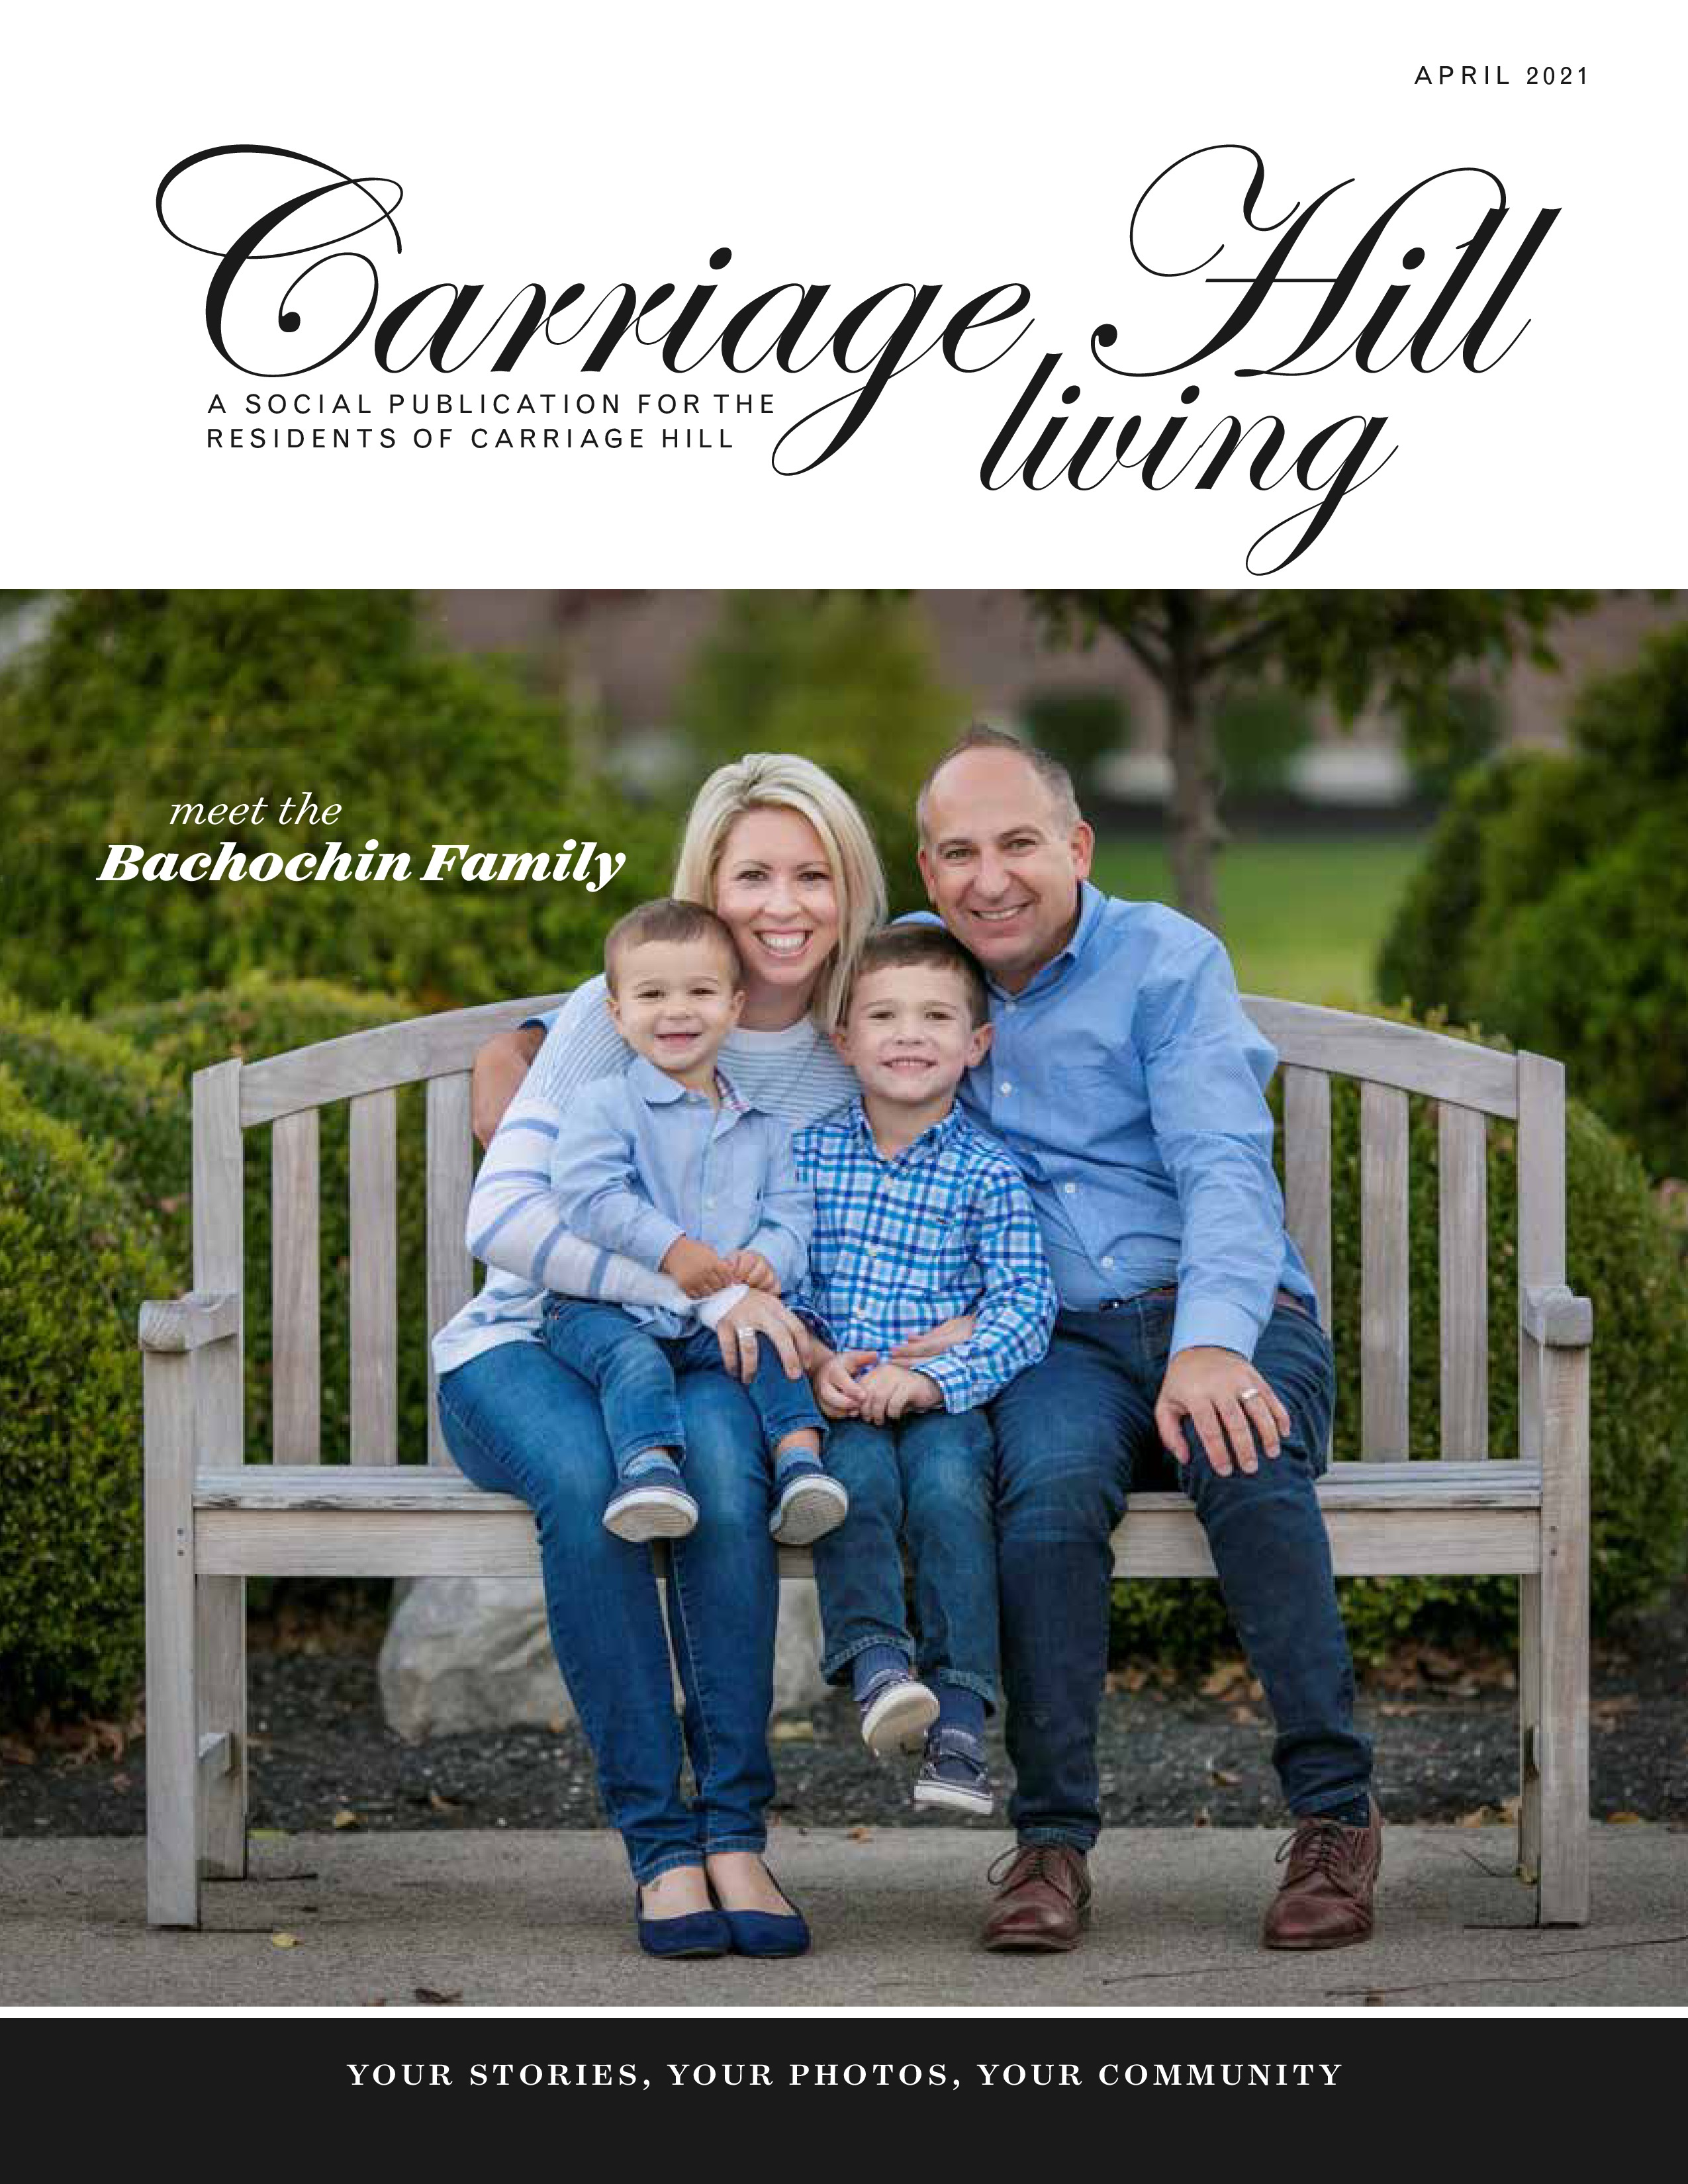 Carriage Hill Living 2021-04-01